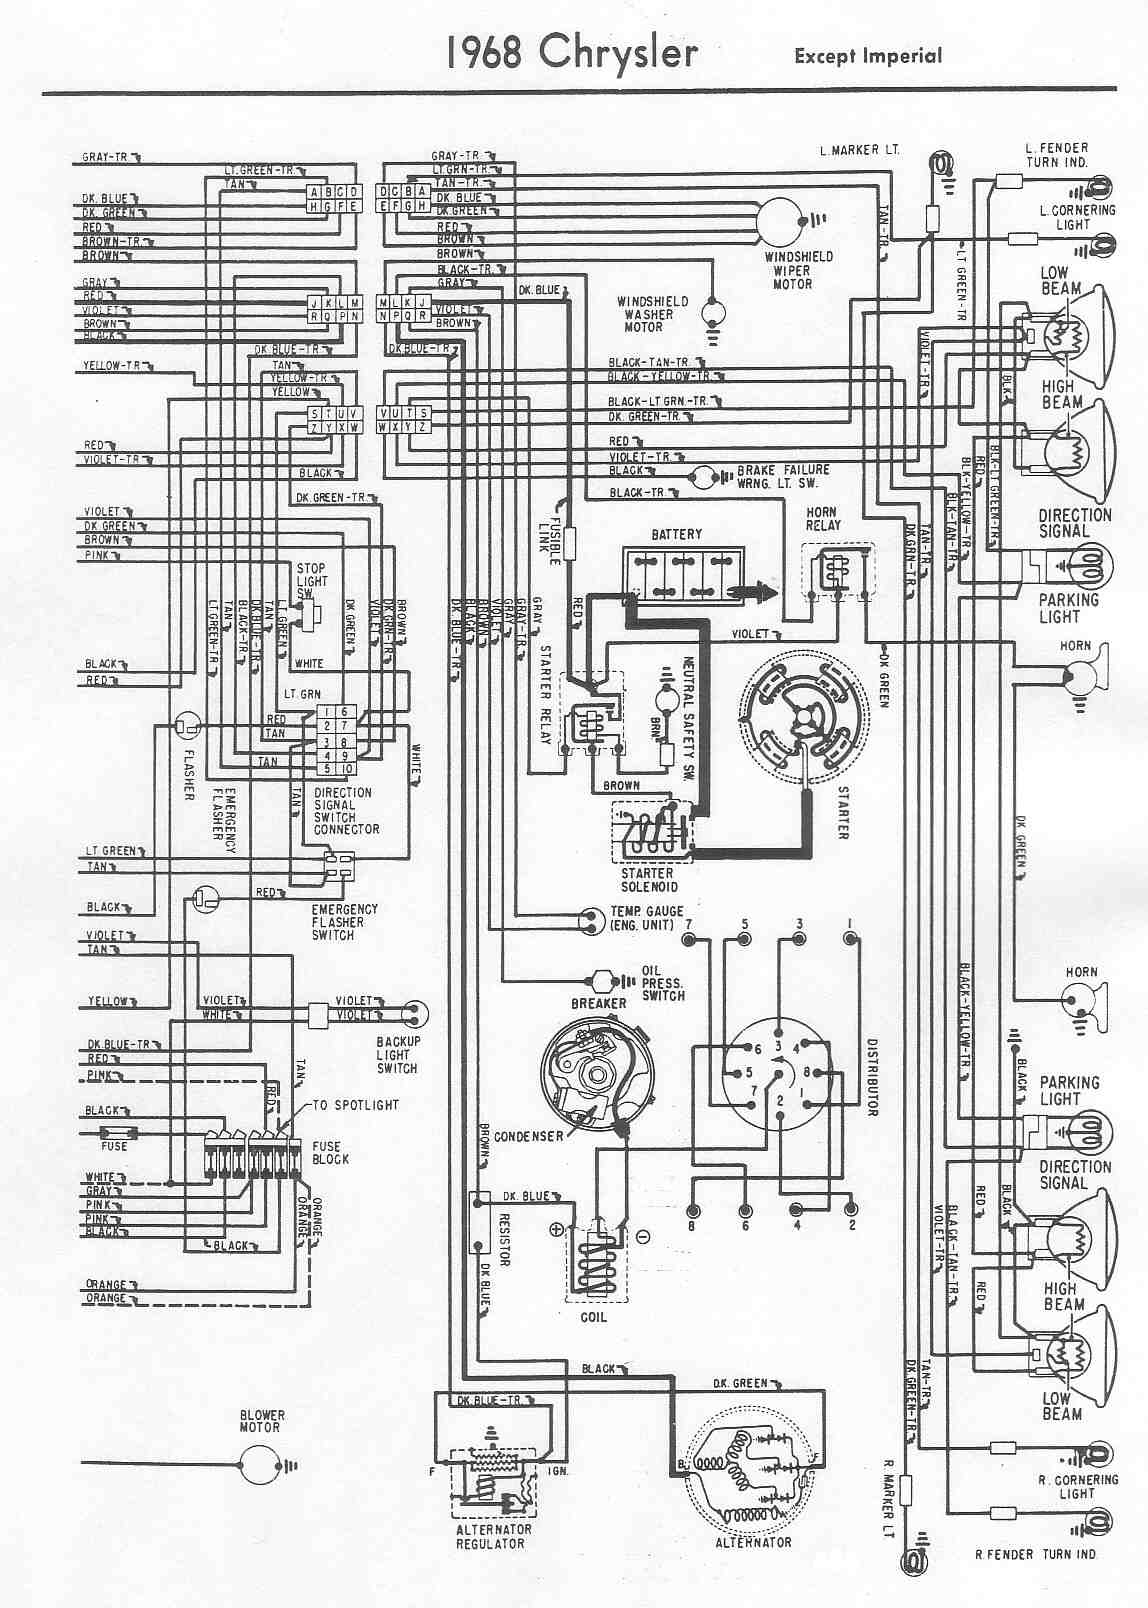 small resolution of 1966 gto wiper wiring diagram schematic wiring diagrams lol 65 gto wiring diagram schematic 1966 gto wiper wiring diagram schematic